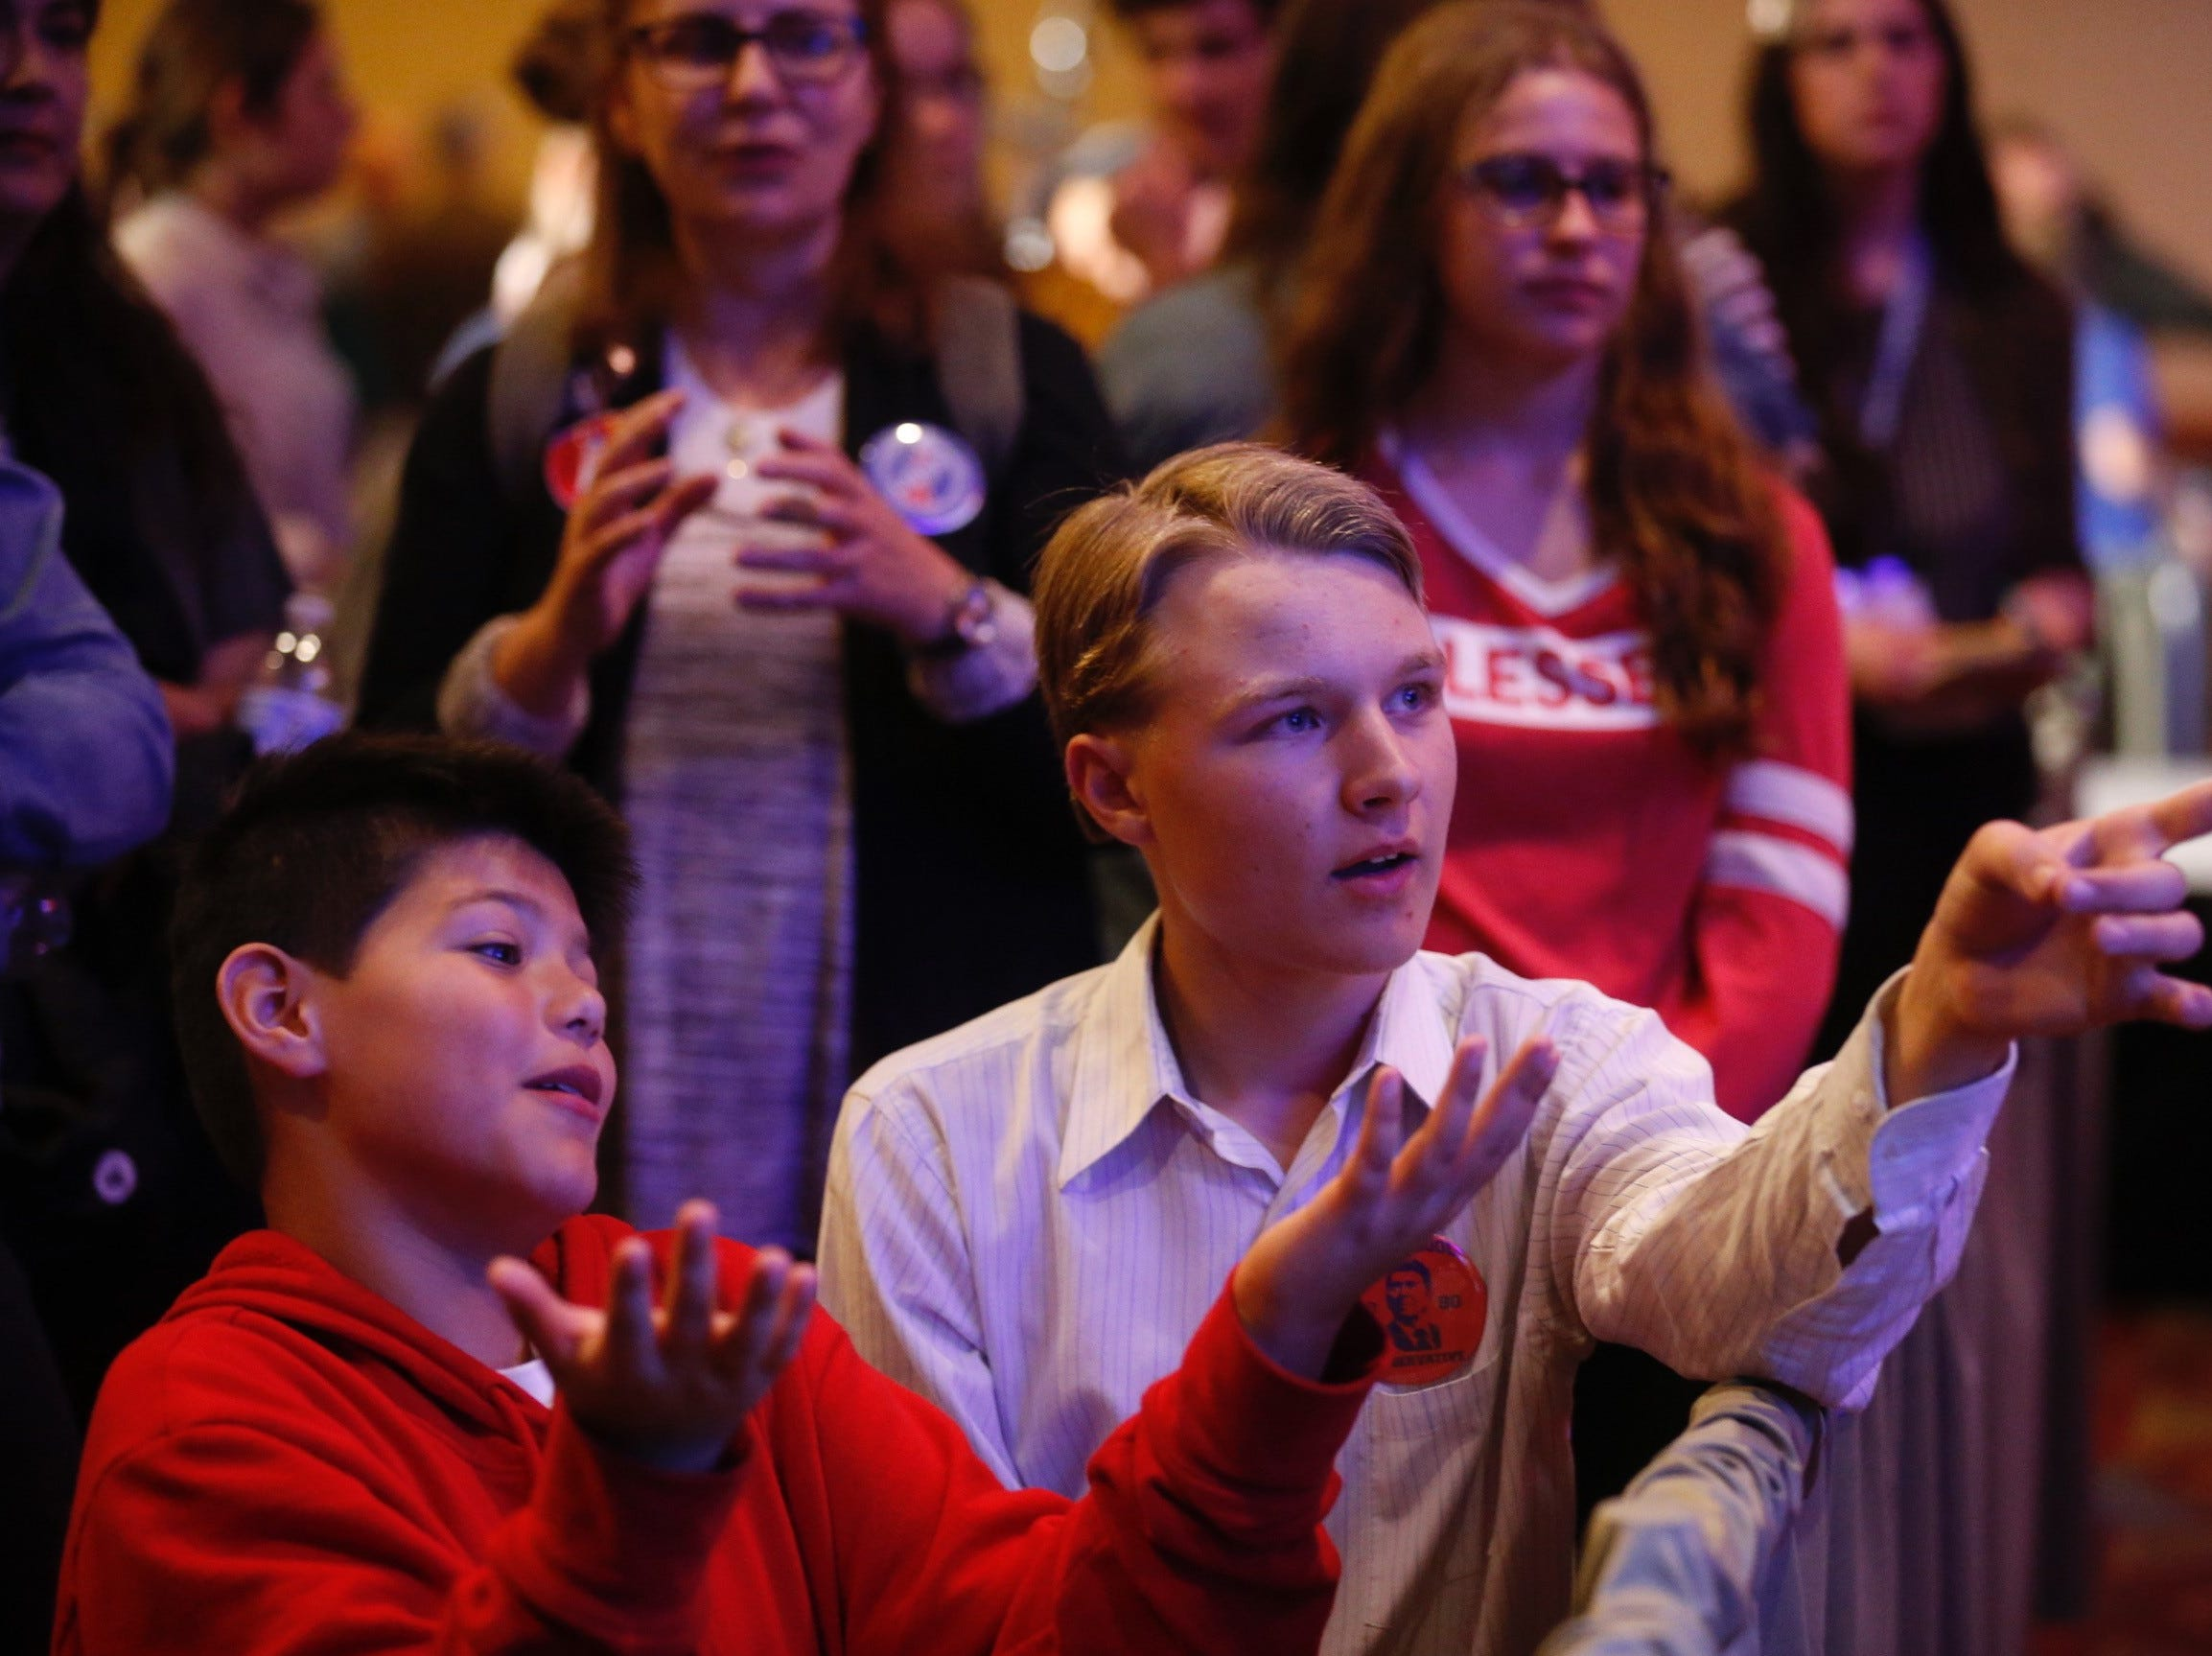 Adrik Fisher, 16, right, and Zachariah Lynch, 11, check on election results during the Greene County Republican watch party at University Plaza on Tuesday, Nov. 6, 2018.